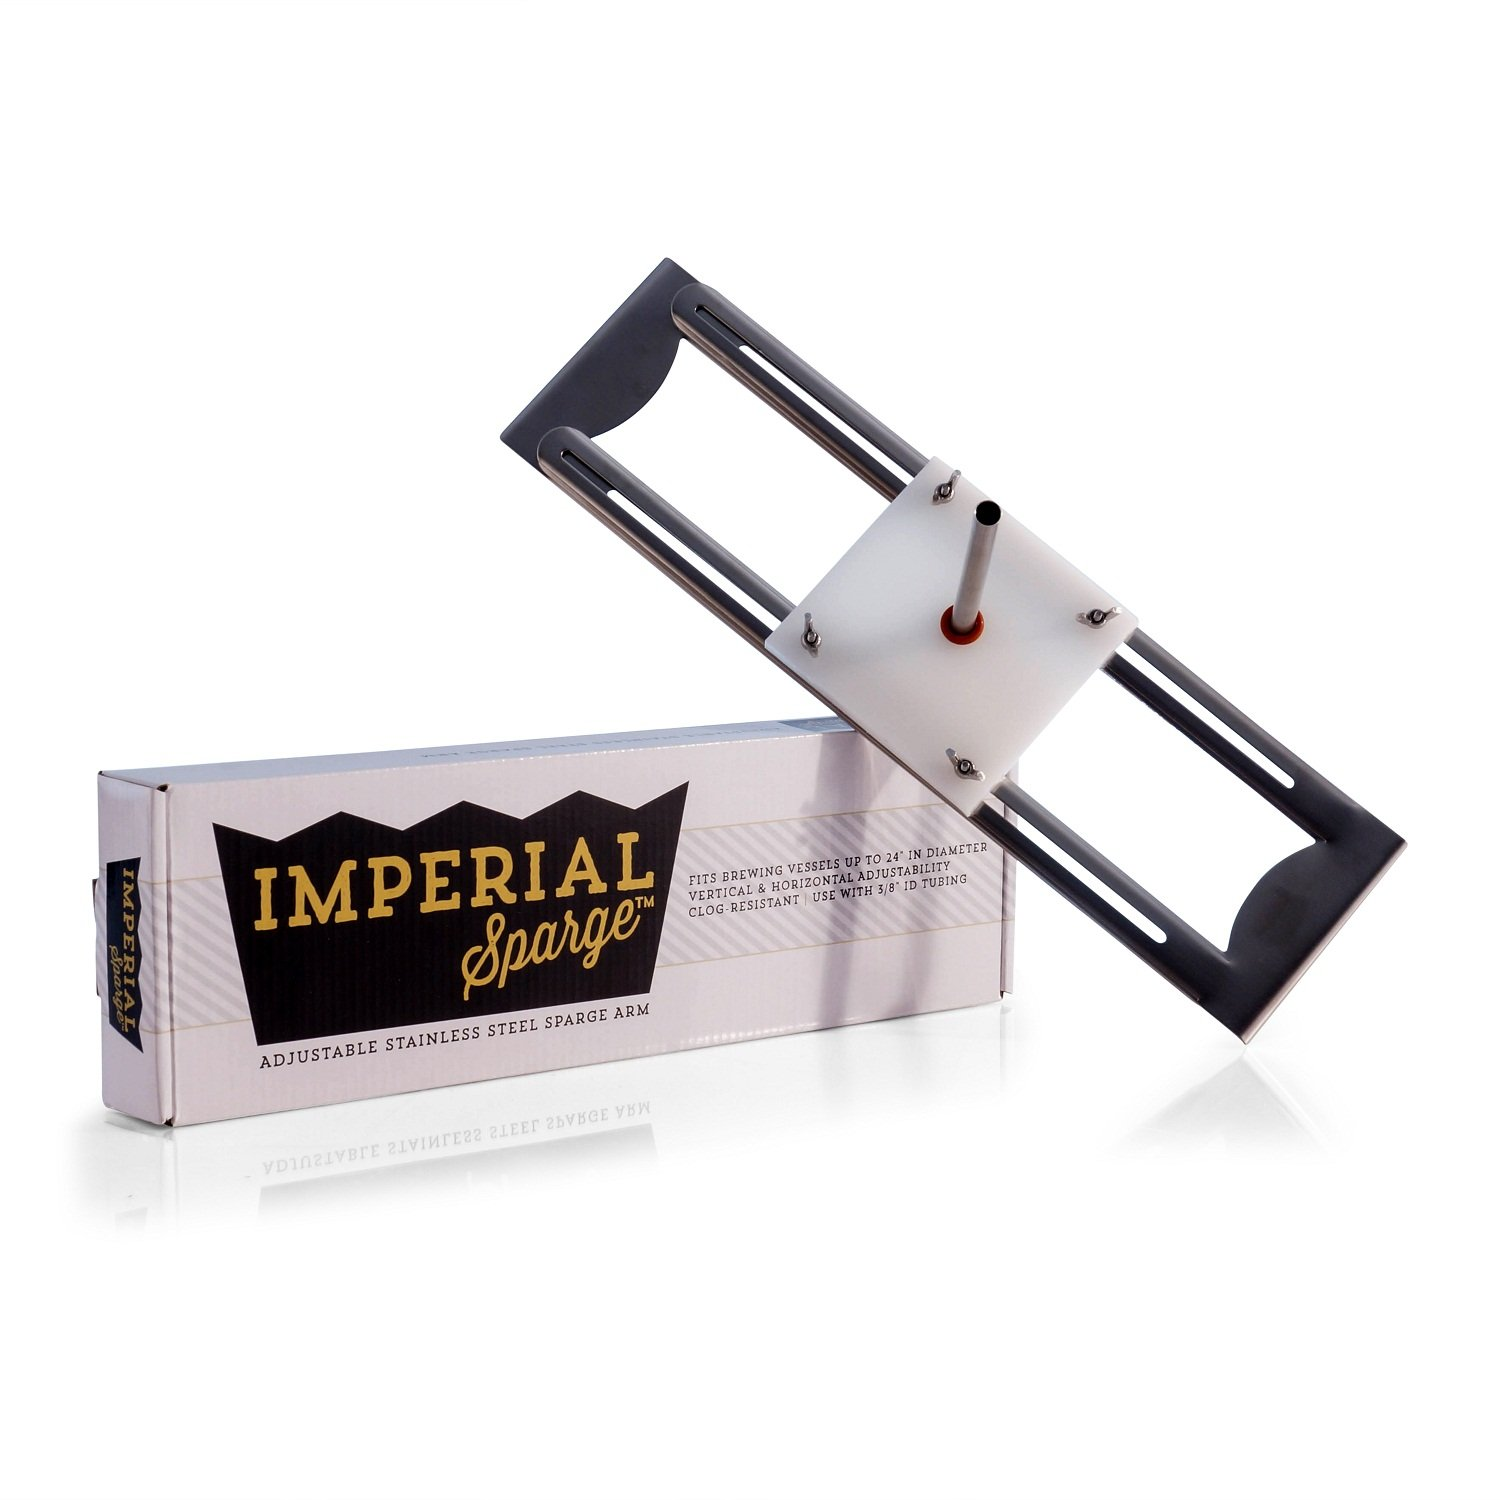 Imperial Sparge Stainless Steel Arm - Adjustable Width For All Grain Home Brewing by Northern Brewer